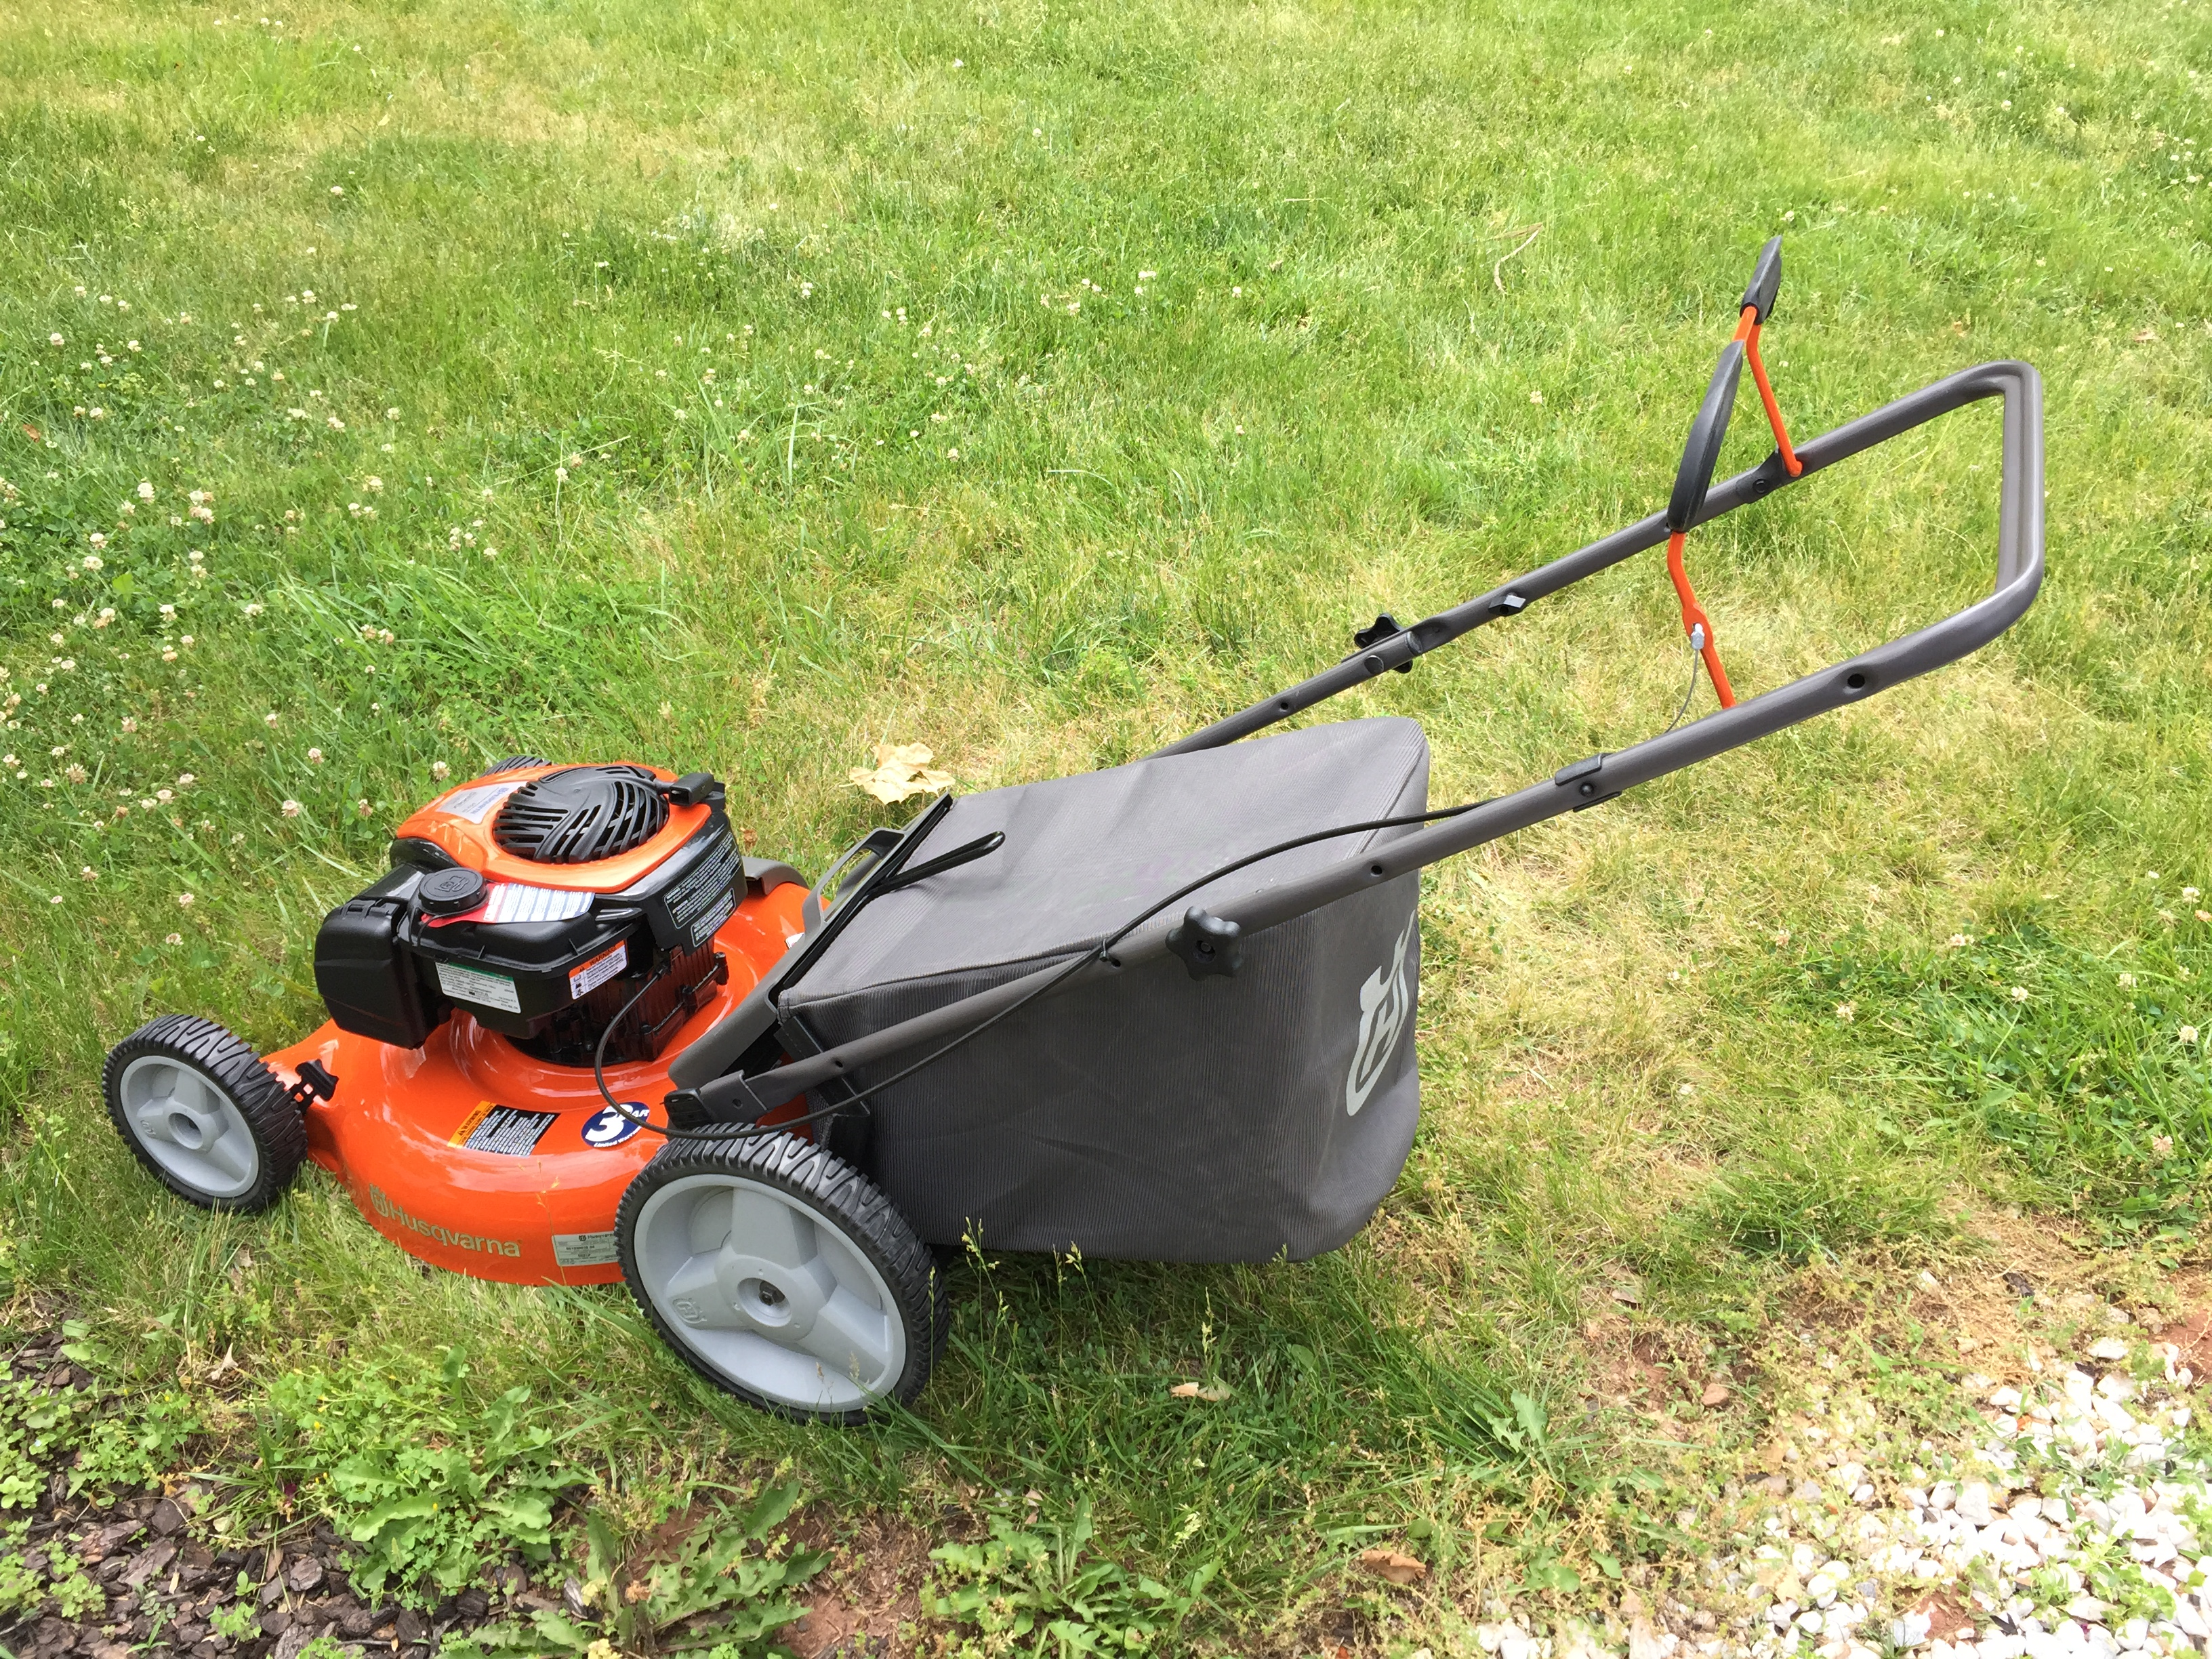 Lawn Mower On A Hill : File a lawn mower on tranquility court